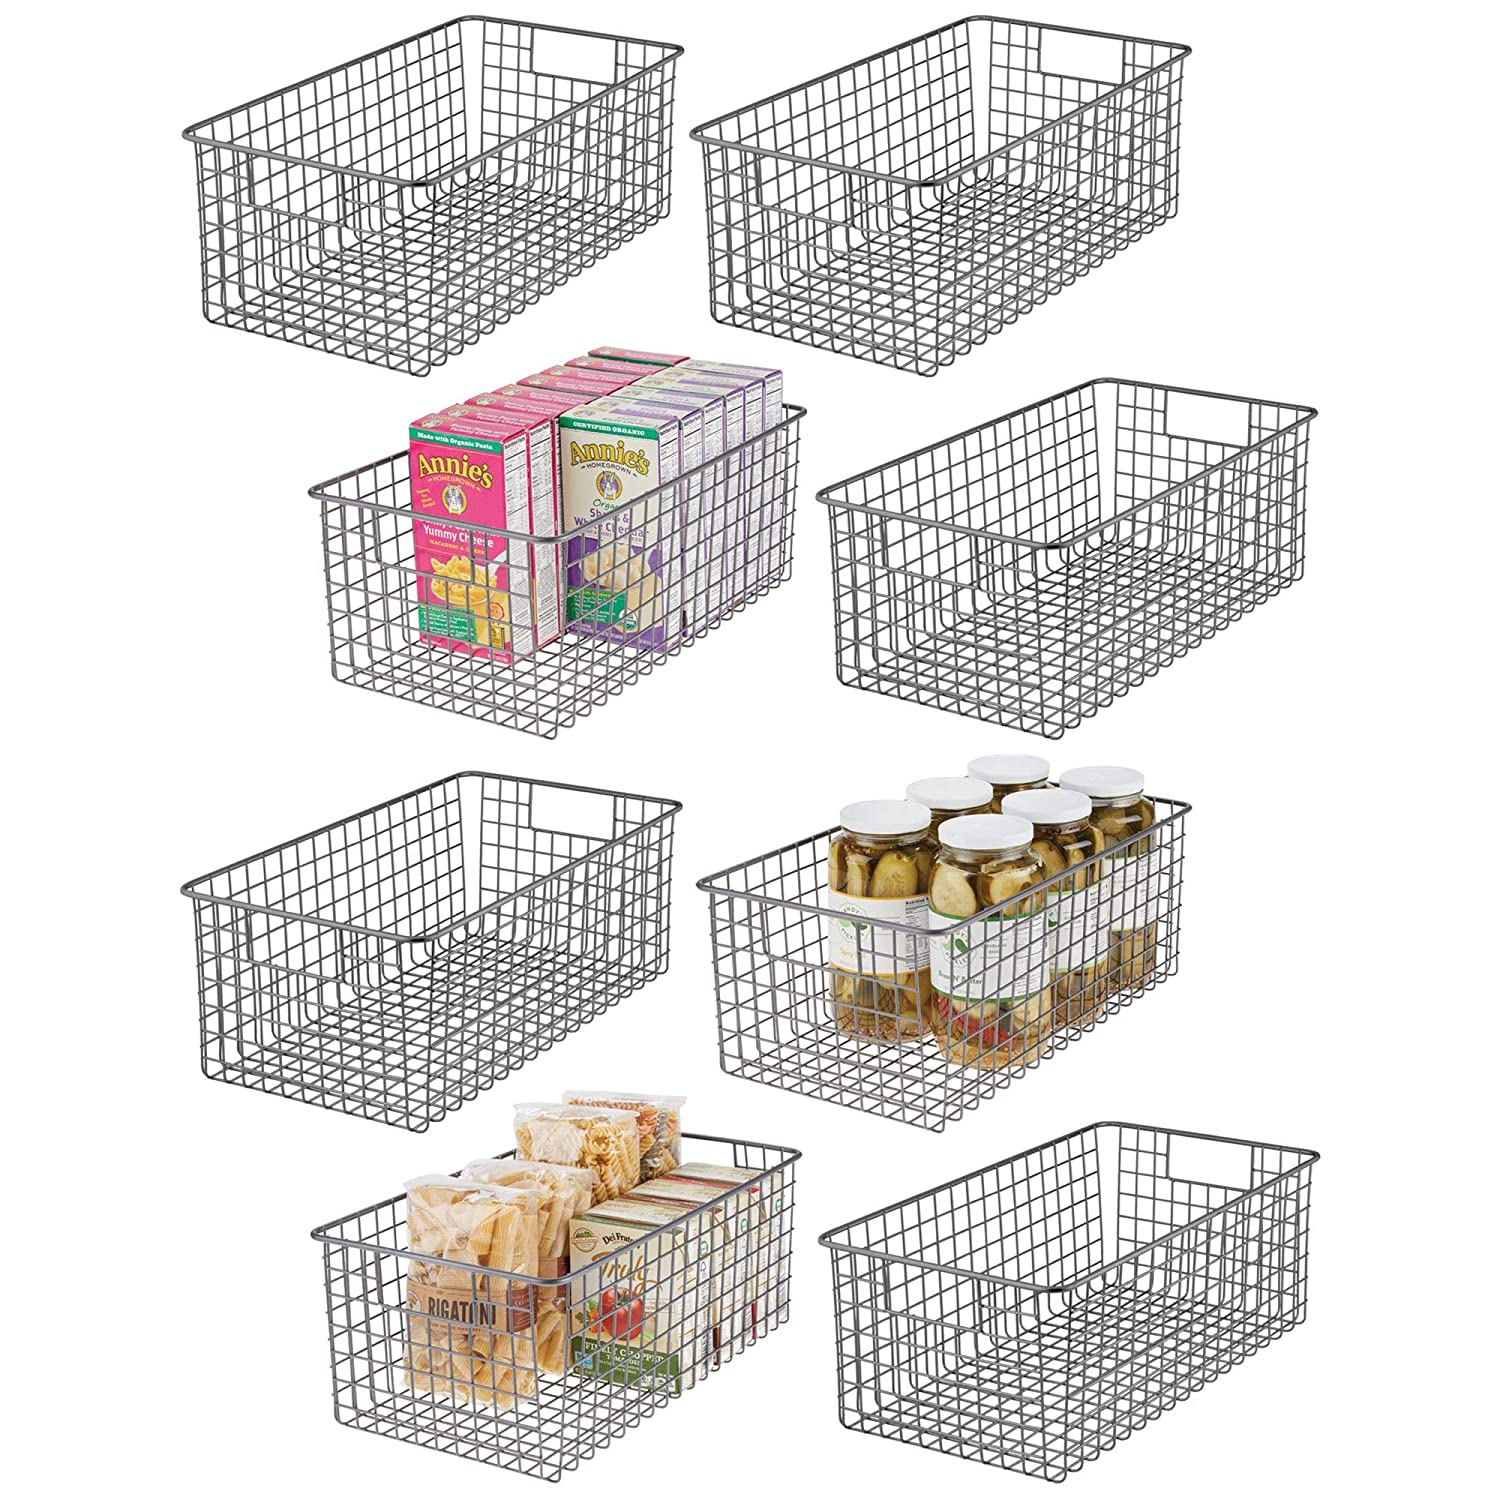 mDesign Farmhouse Decor Metal Wire Food Organizer Storage Bin Basket with Handles for Kitchen Cabinets, Pantry, Bathroom, Laundry Room, Closets, Garage - 16 x 9 x 6 in. - 8 Pack - Graphite Gray